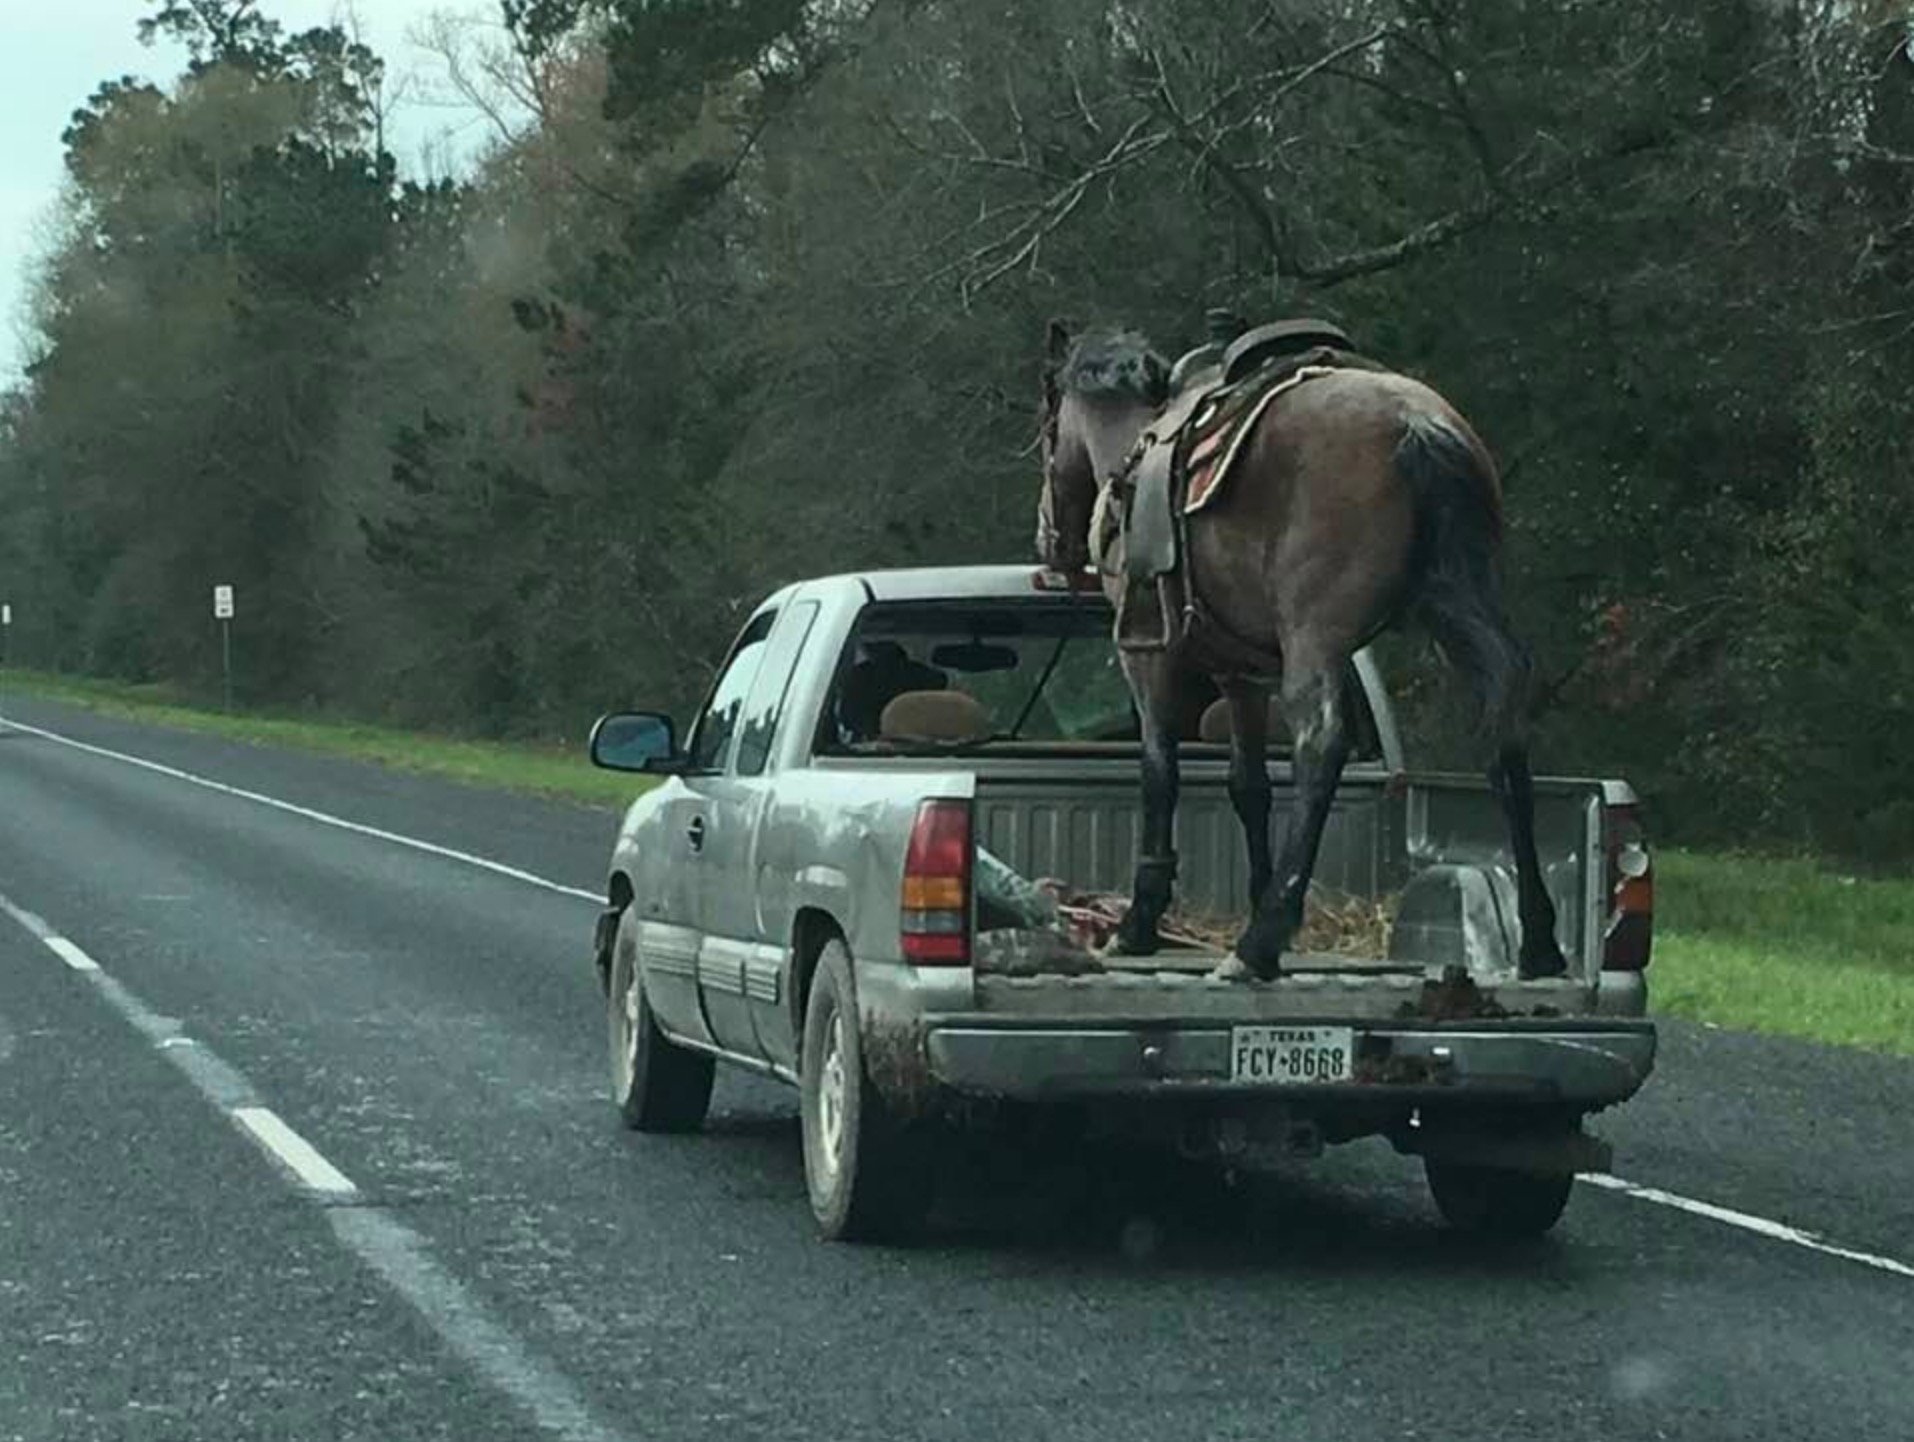 Driver Who Hauled Horse In Bed Of Pick Up Truck Could Face